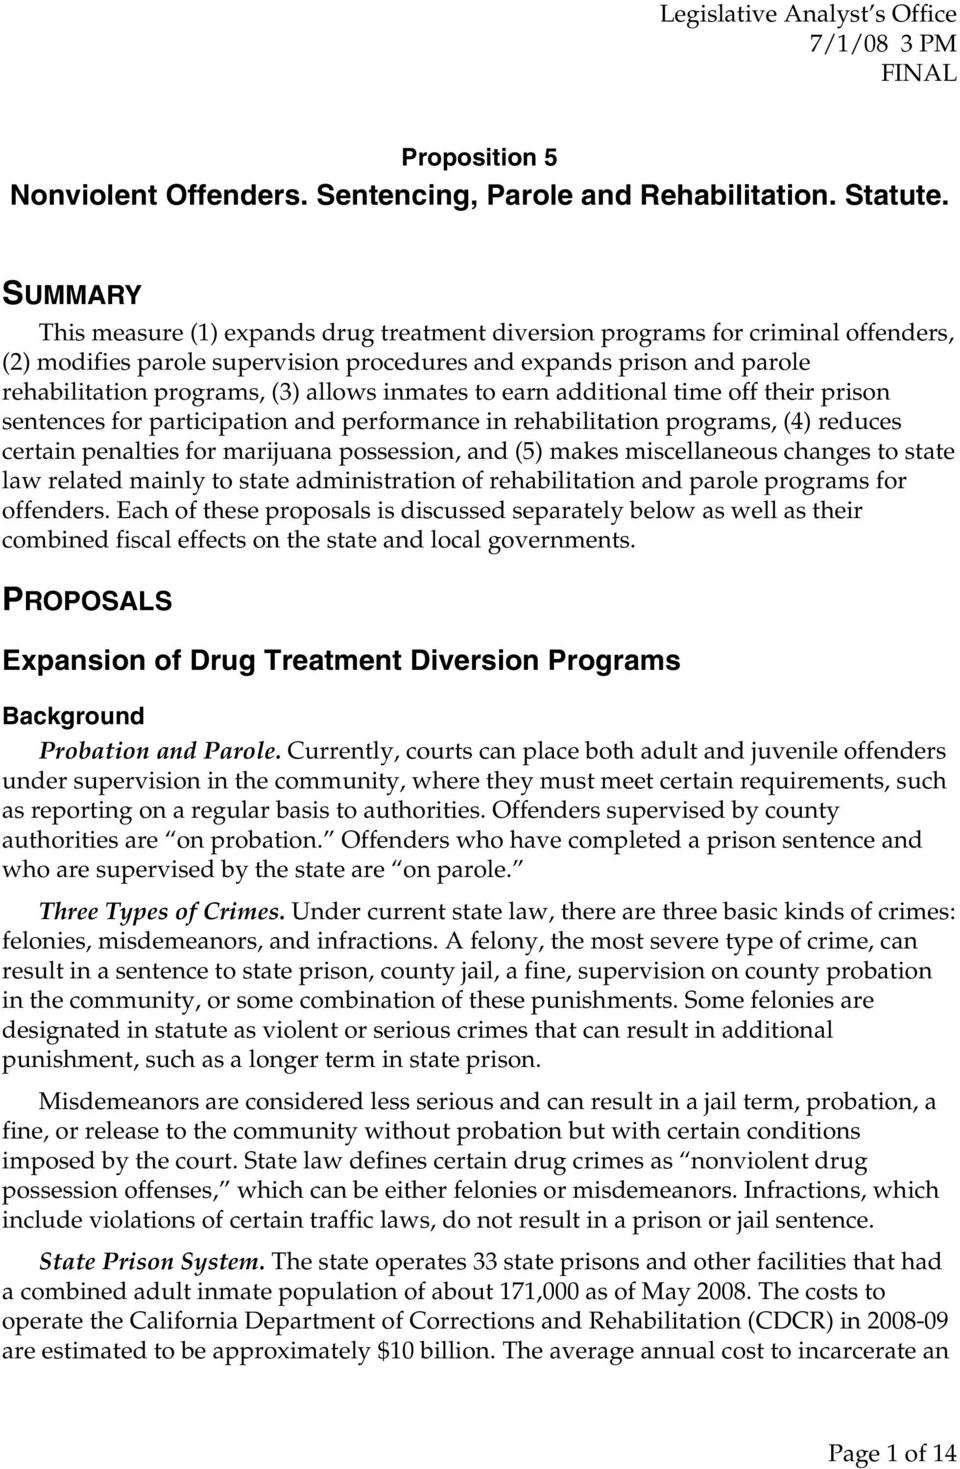 inmates to earn additional time off their prison sentences for participation and performance in rehabilitation programs, (4) reduces certain penalties for marijuana possession, and (5) makes